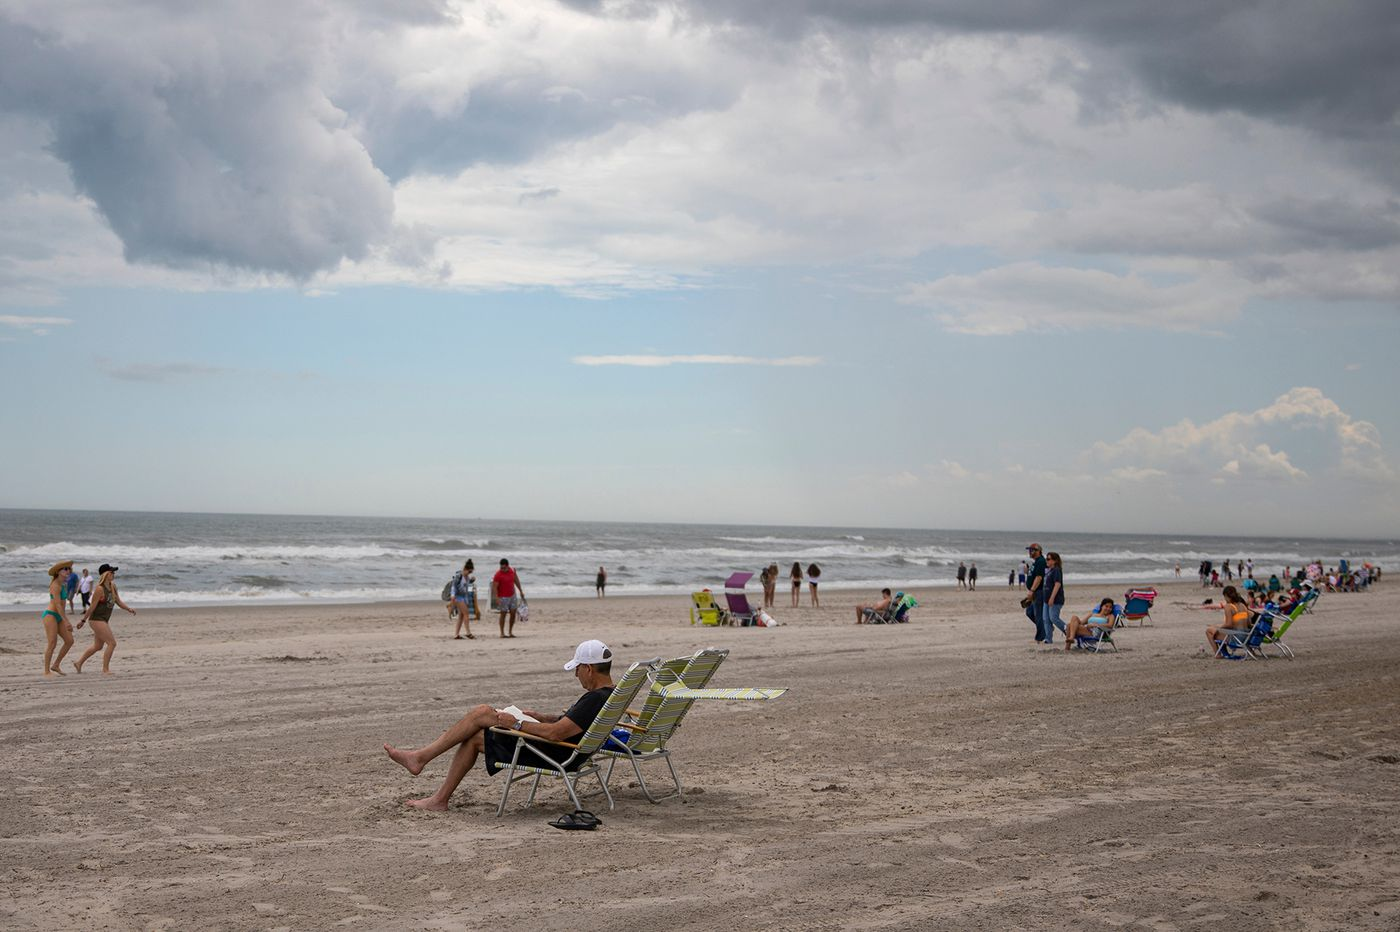 Shore rentals: What you need to know